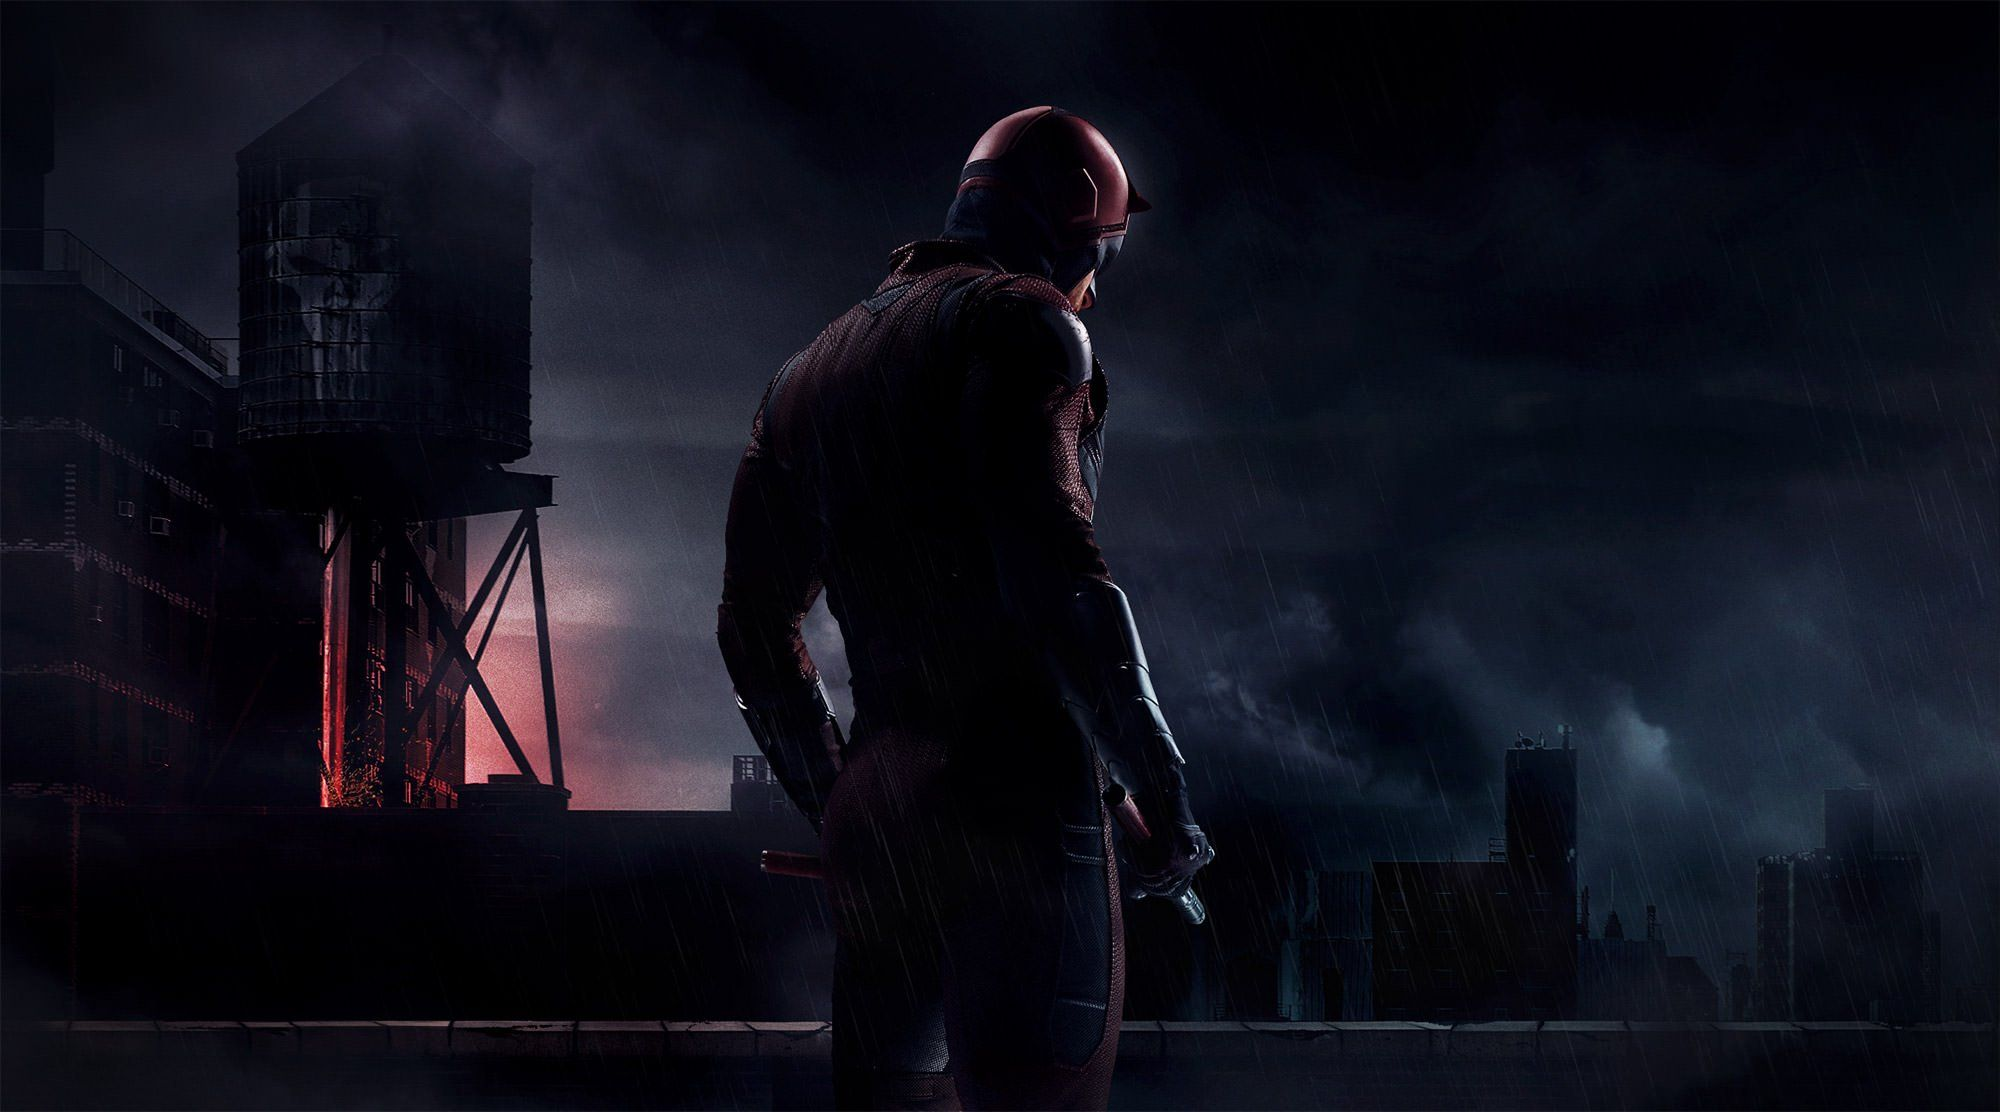 Daredevil Wallpapers Top Free Daredevil Backgrounds